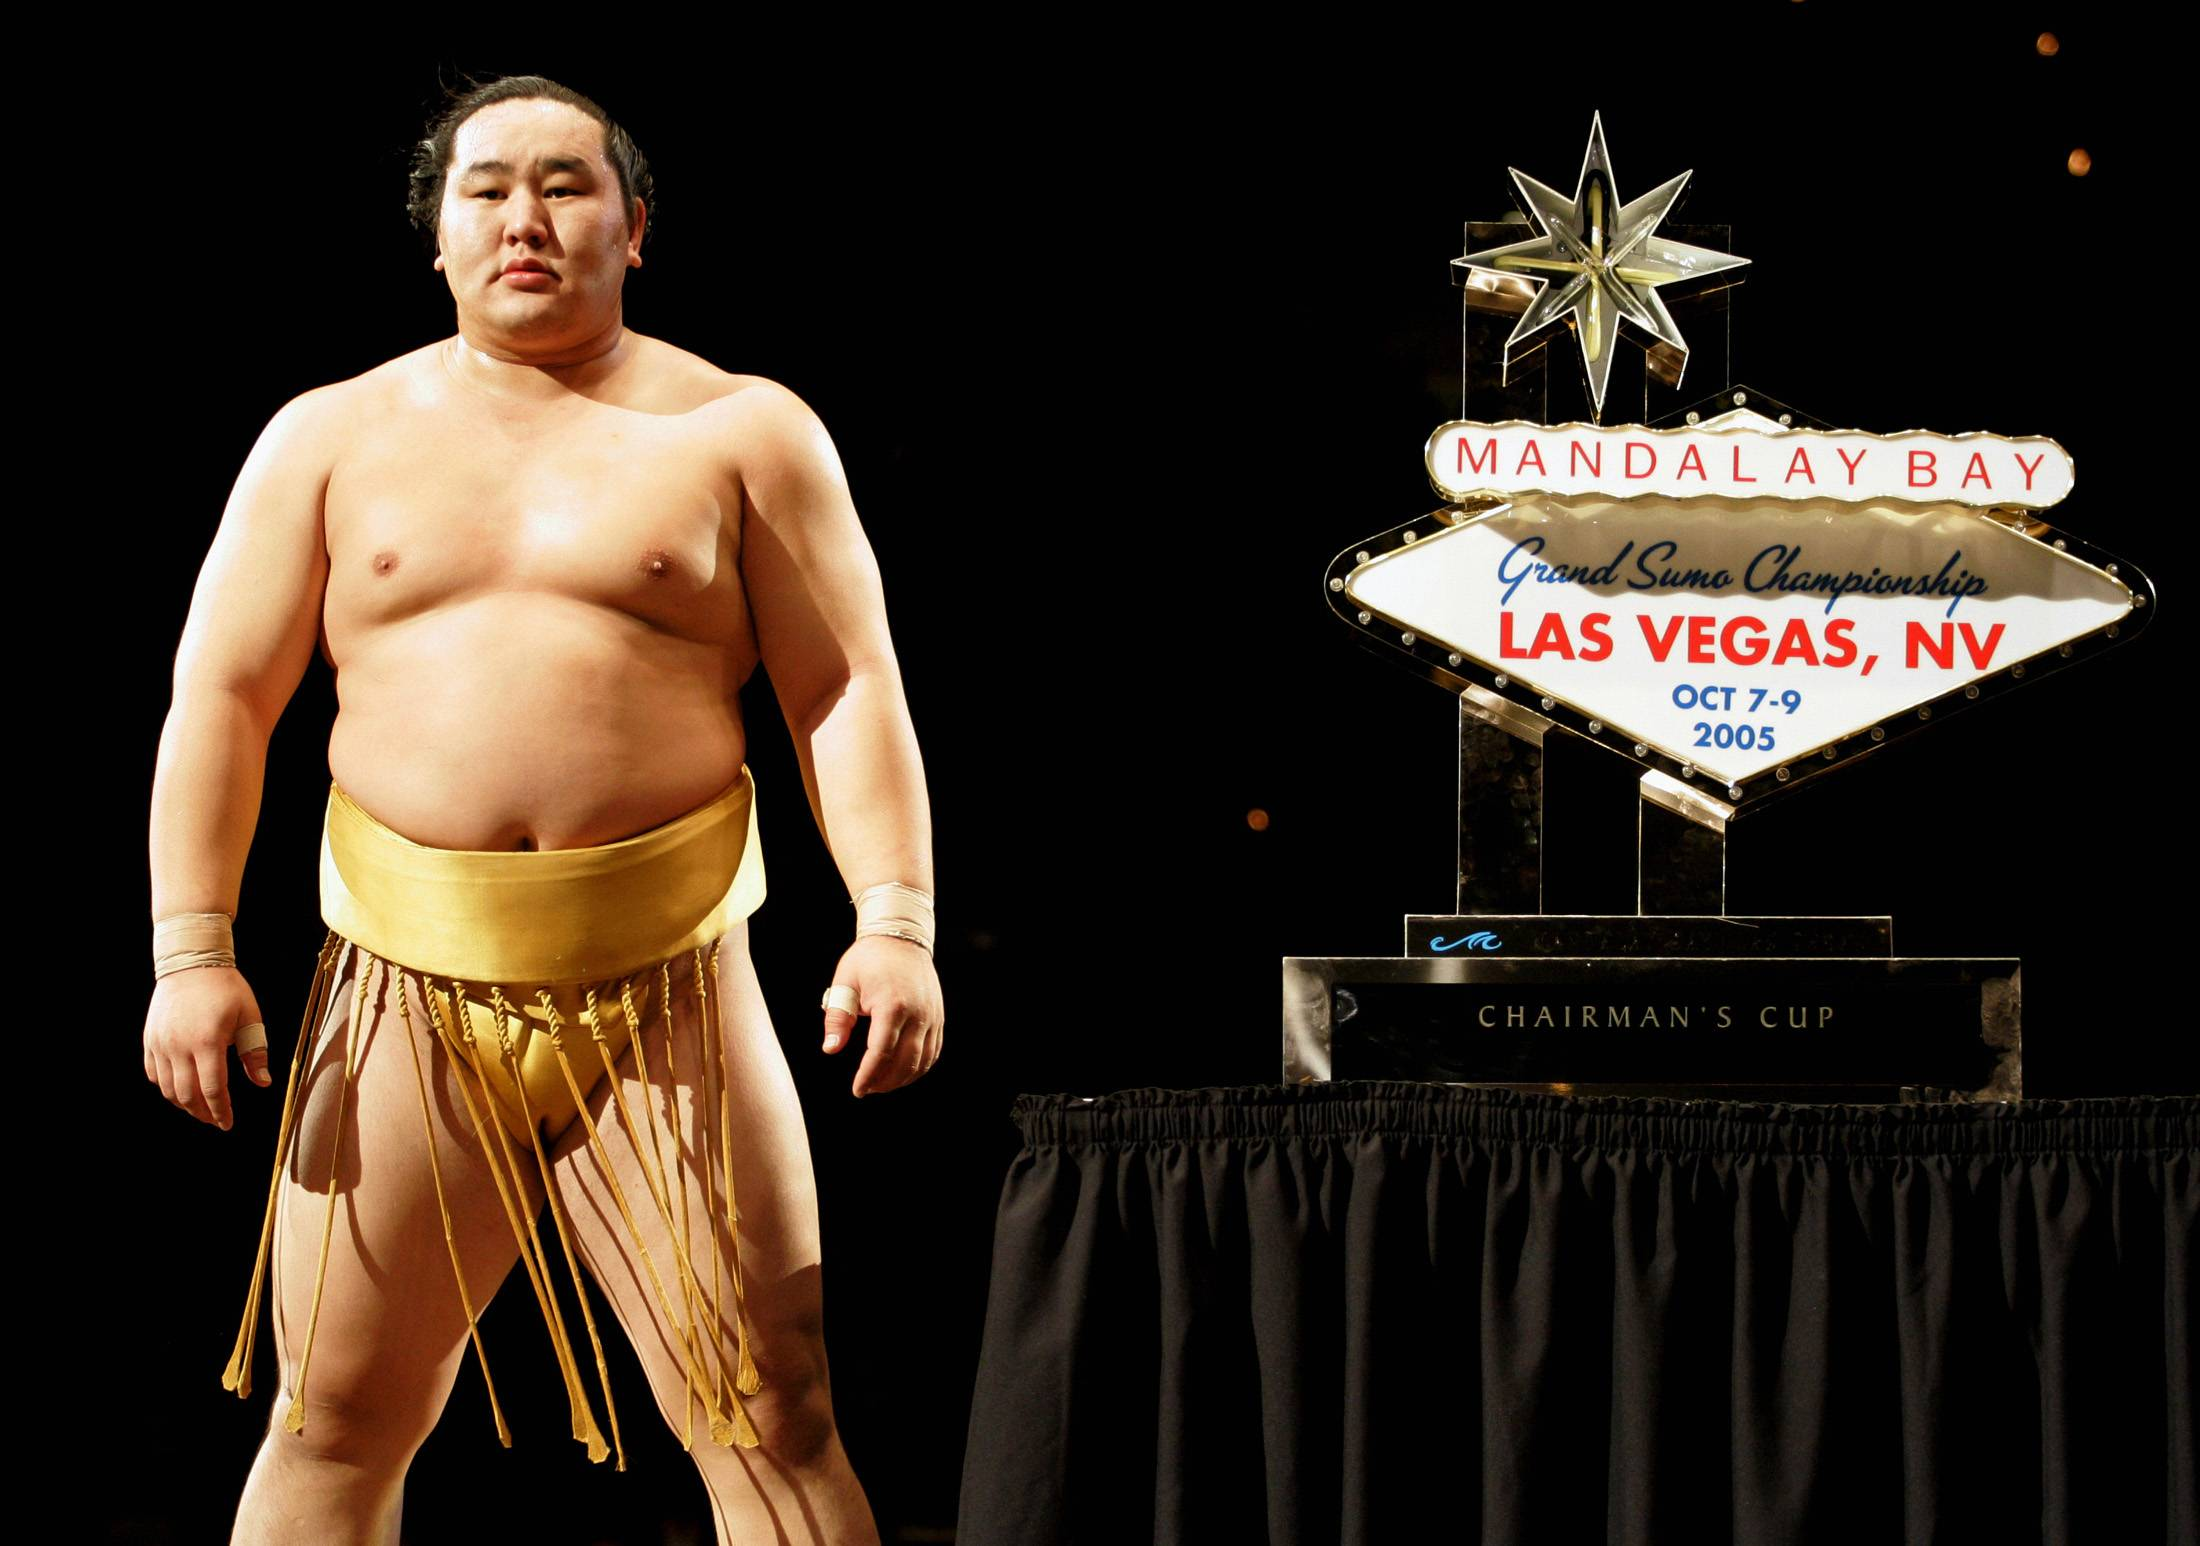 While the Japan Sumo Association has previously sponsored overseas events including an October 2005 tournament in Las Vegas, it has not attempted to offer streams to international audiences. | REUTERS